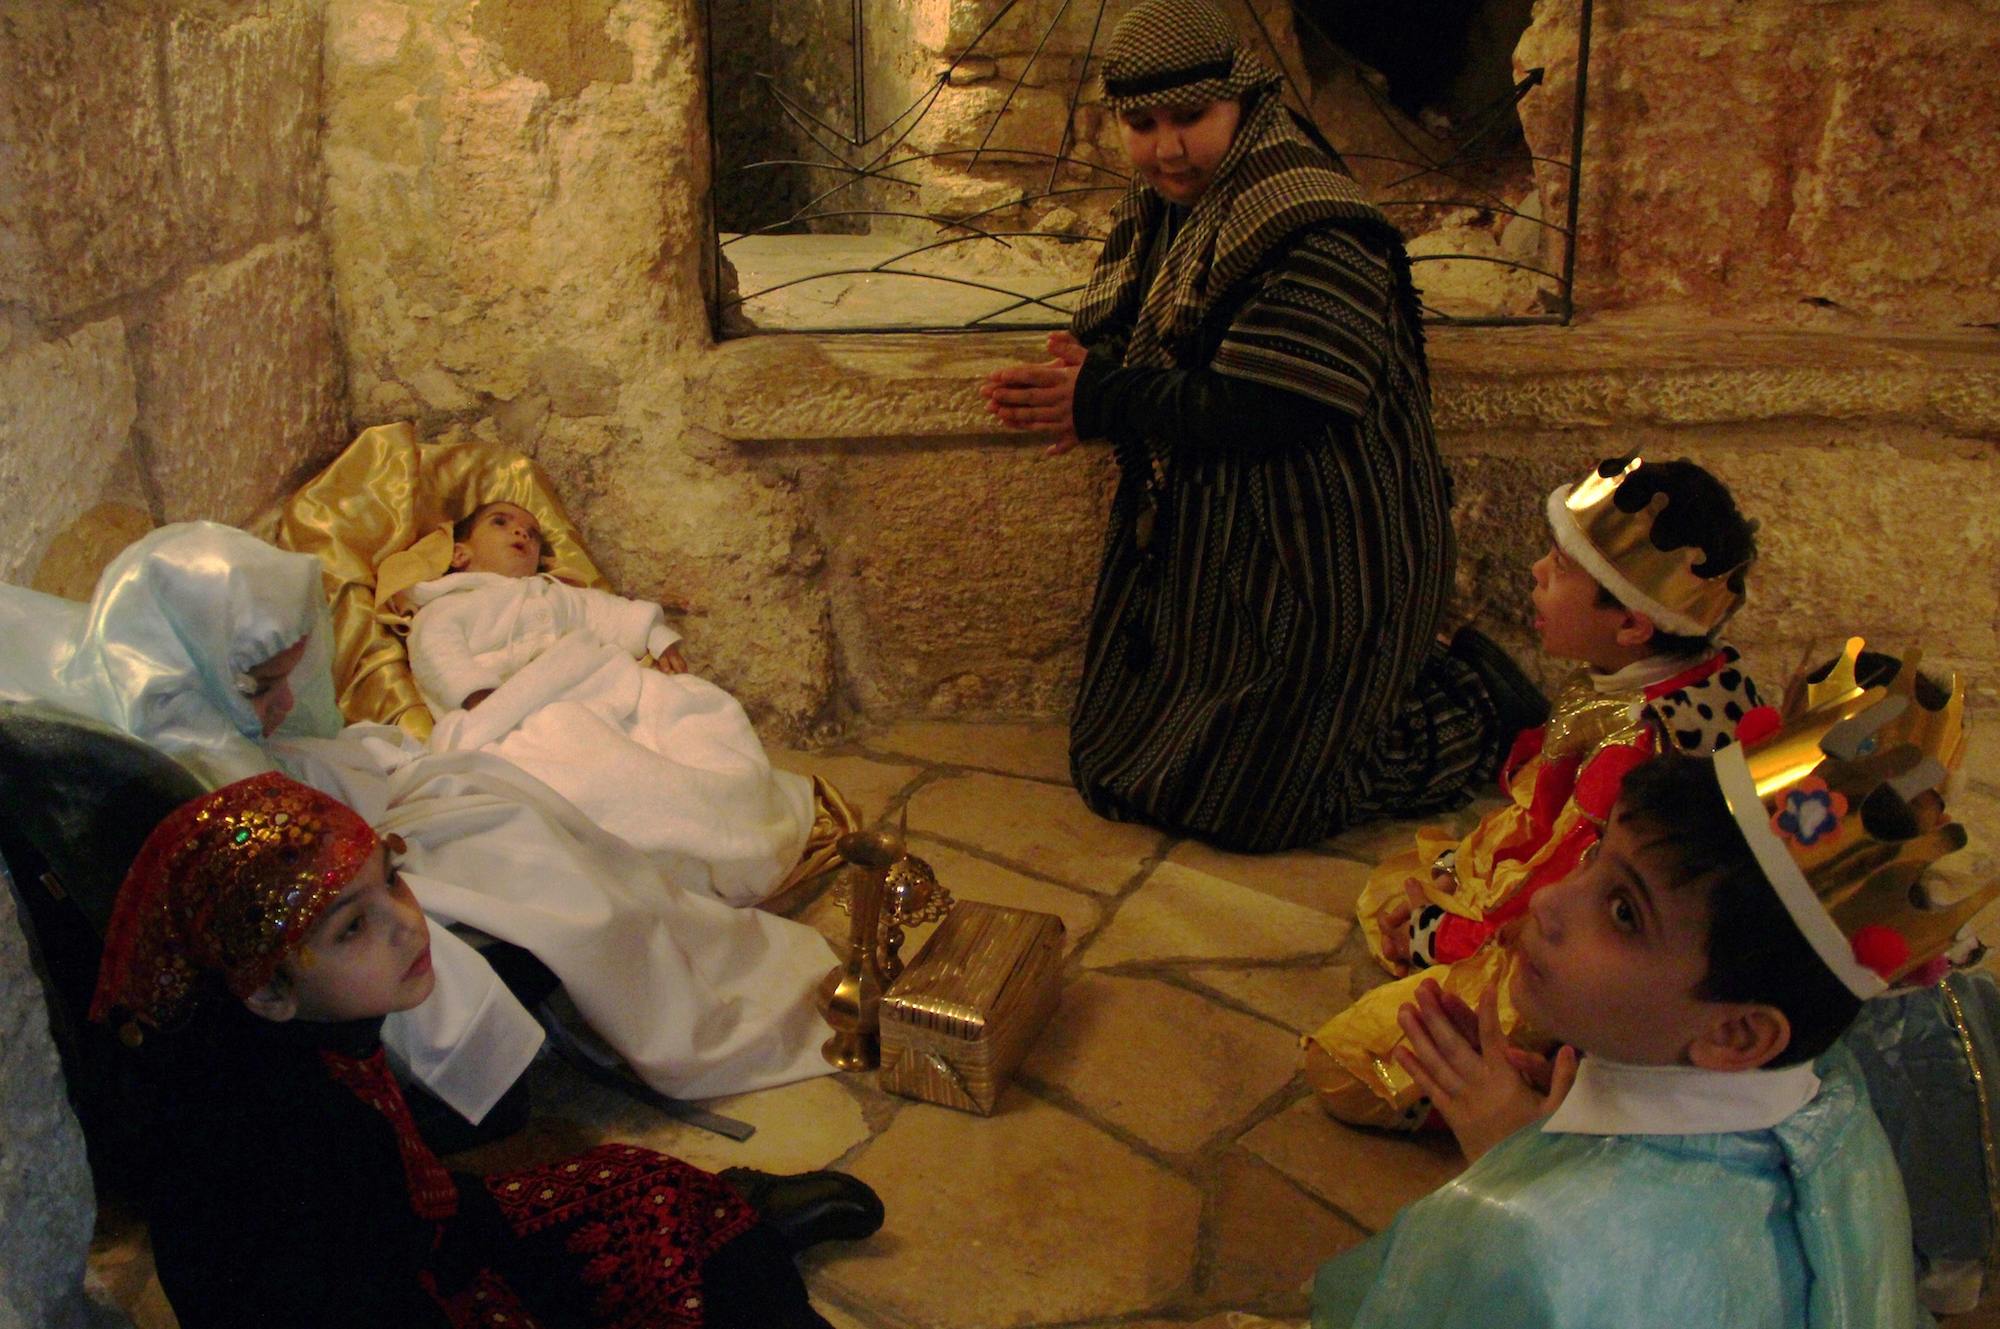 The Nativity Play in Bethlehem